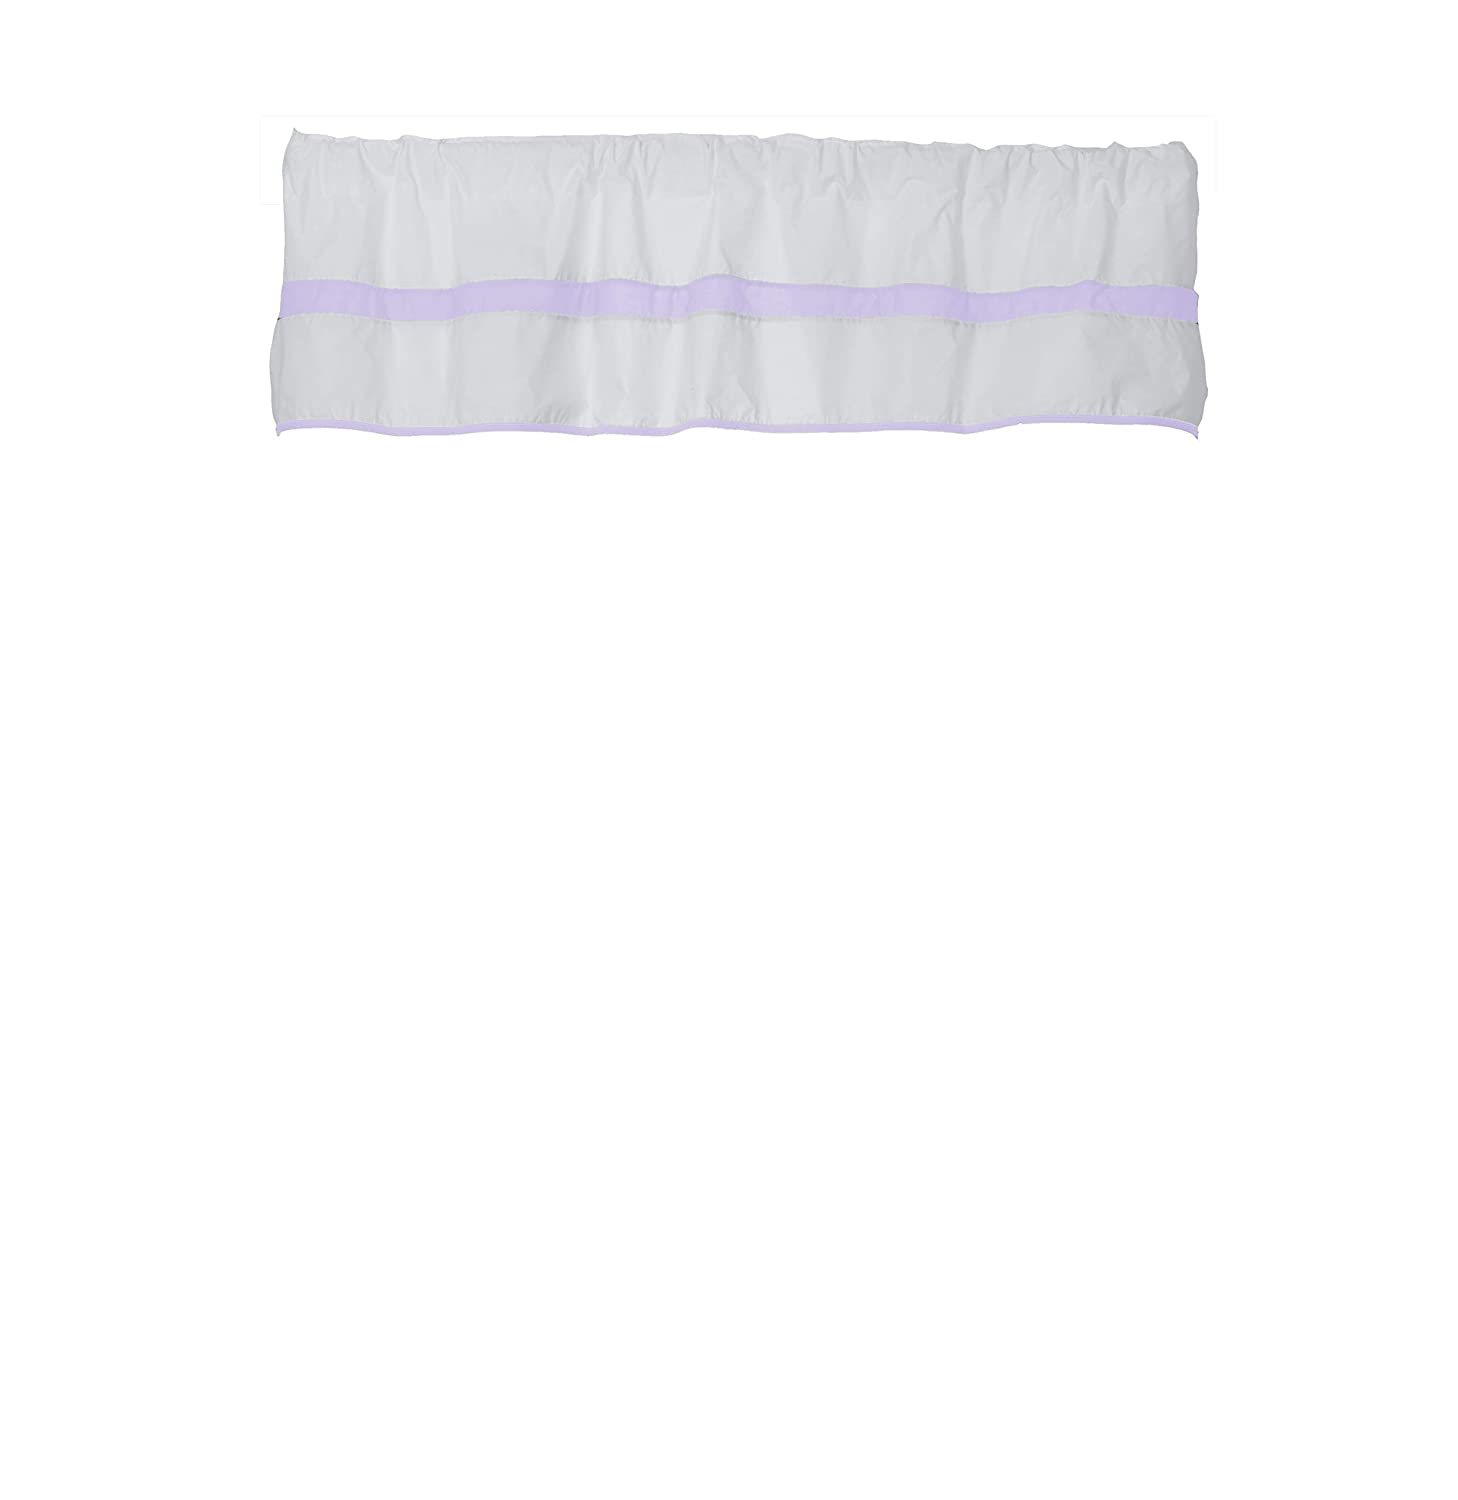 Baby Doll Bedding Modern Hotel Valance 70% Detroit Mall OFF Outlet Style Lavender Window